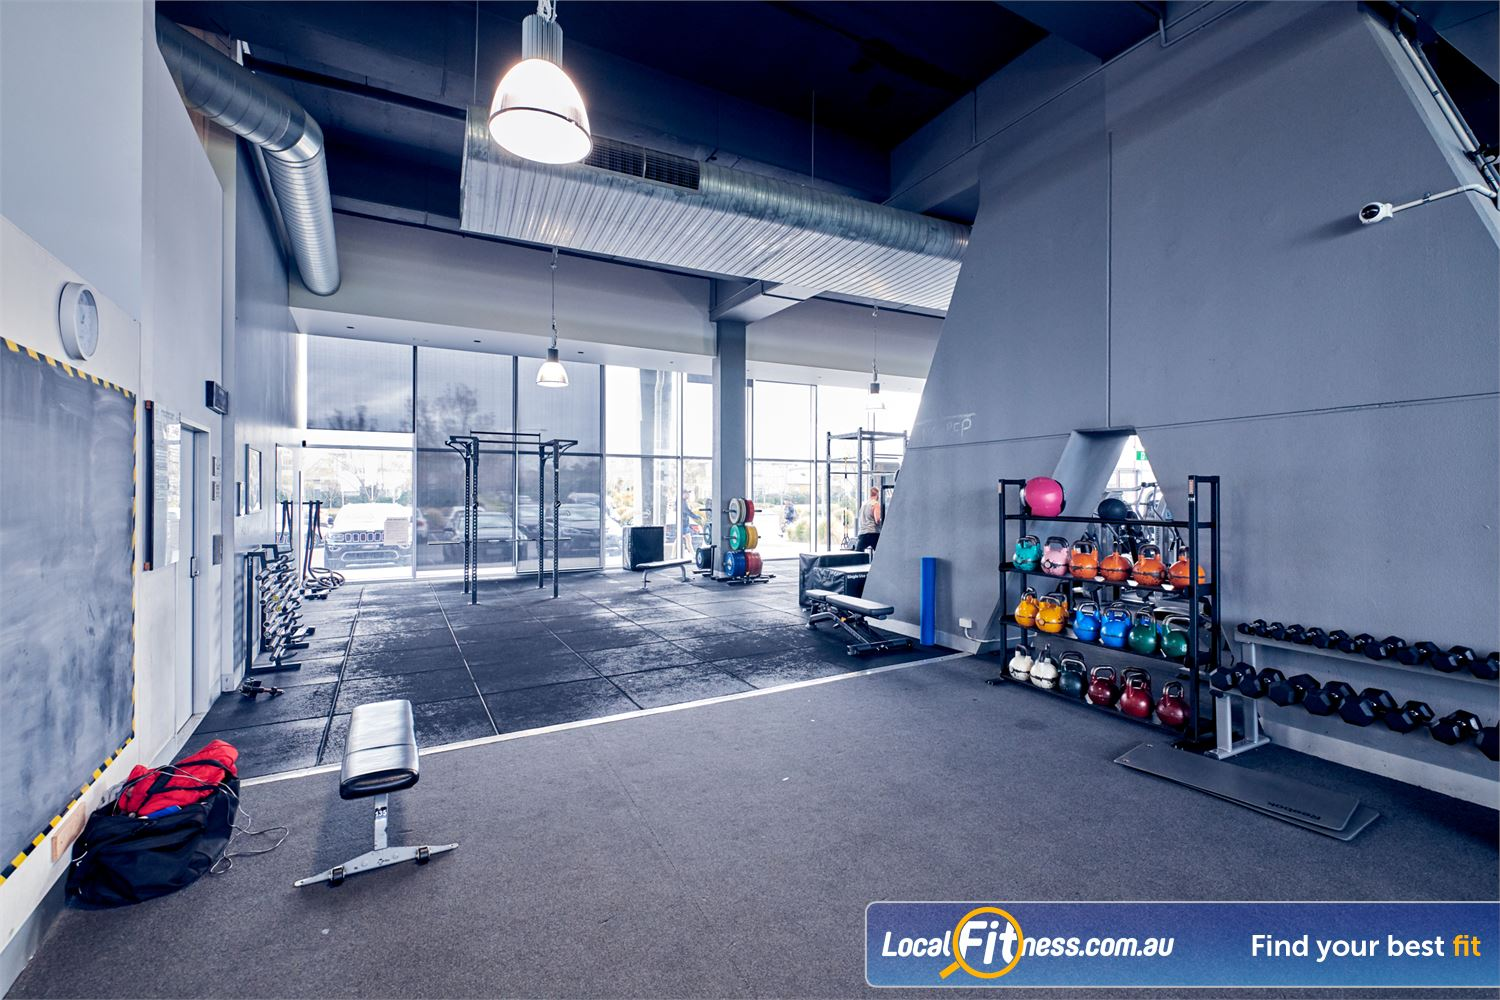 Goodlife Health Clubs Waverley Park Near Noble Park North Our Mulgrave gym includes a dedicated functional training space.